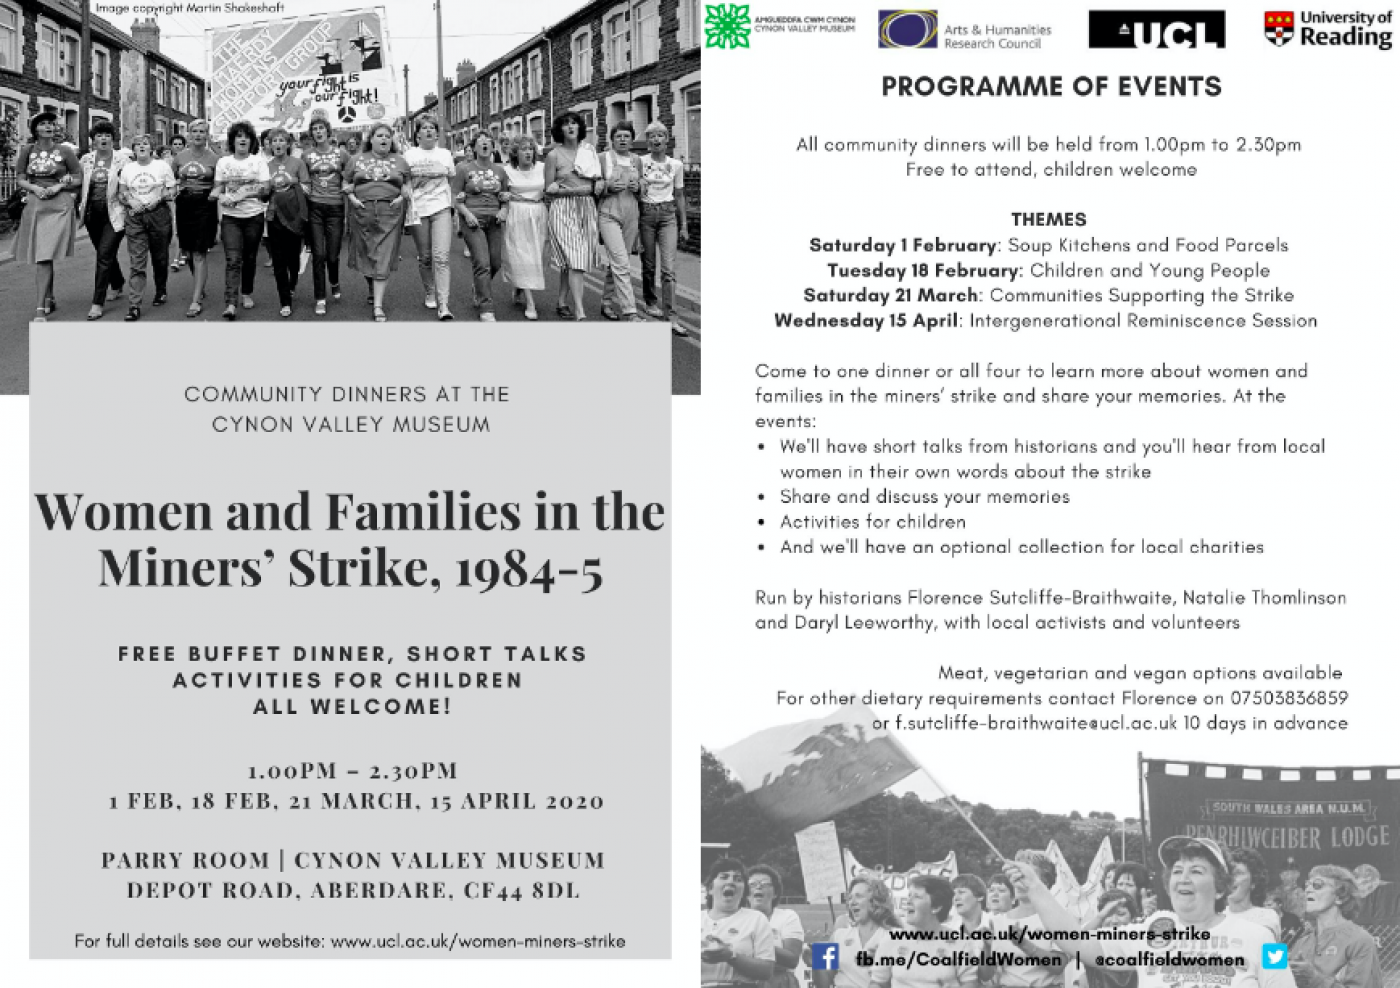 Community dinners at the Cynon Valley Museum